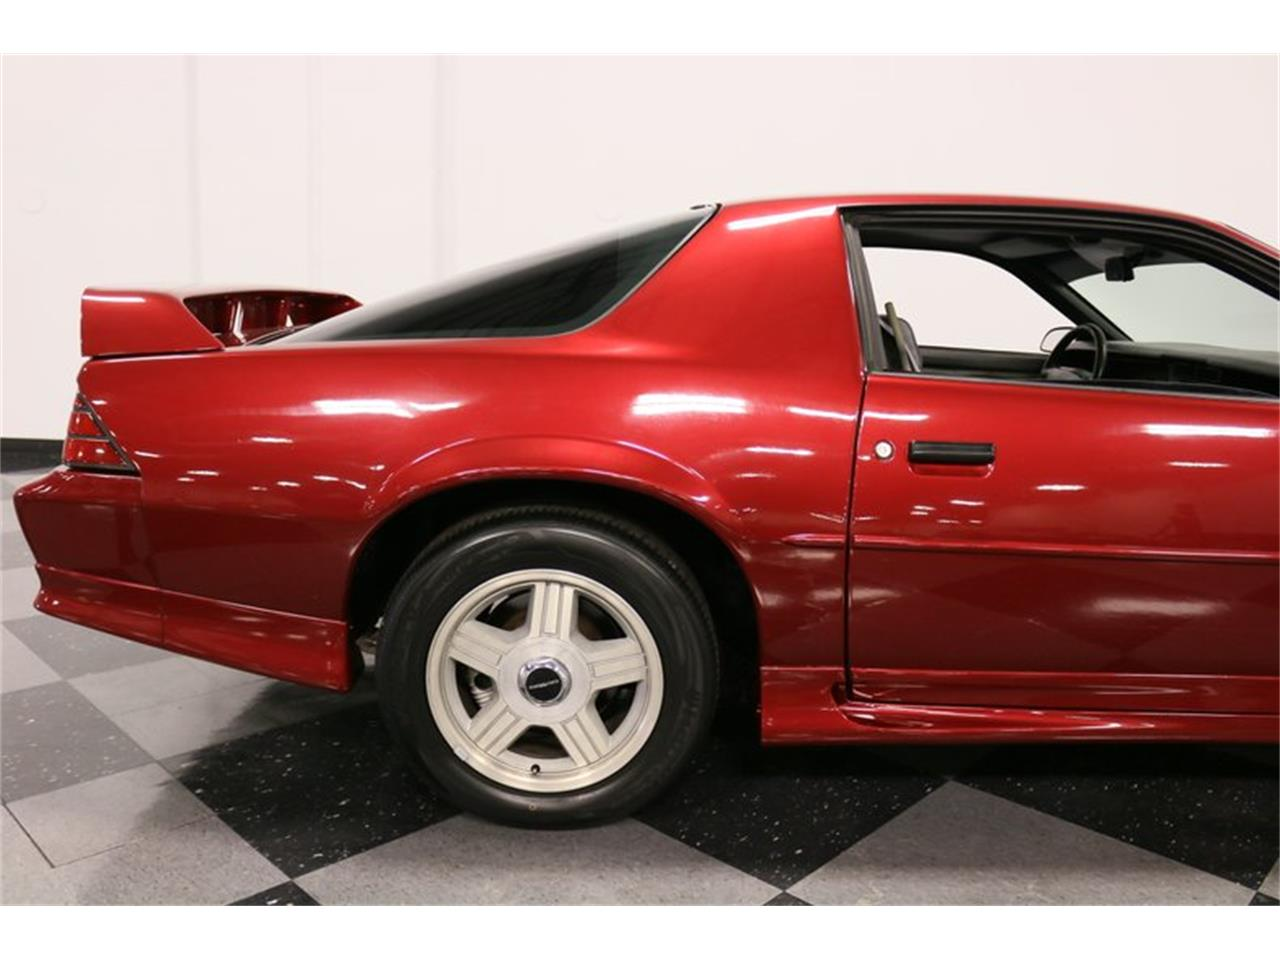 Large Picture of 1991 Camaro located in Ft Worth Texas - $11,995.00 Offered by Streetside Classics - Dallas / Fort Worth - PBLJ